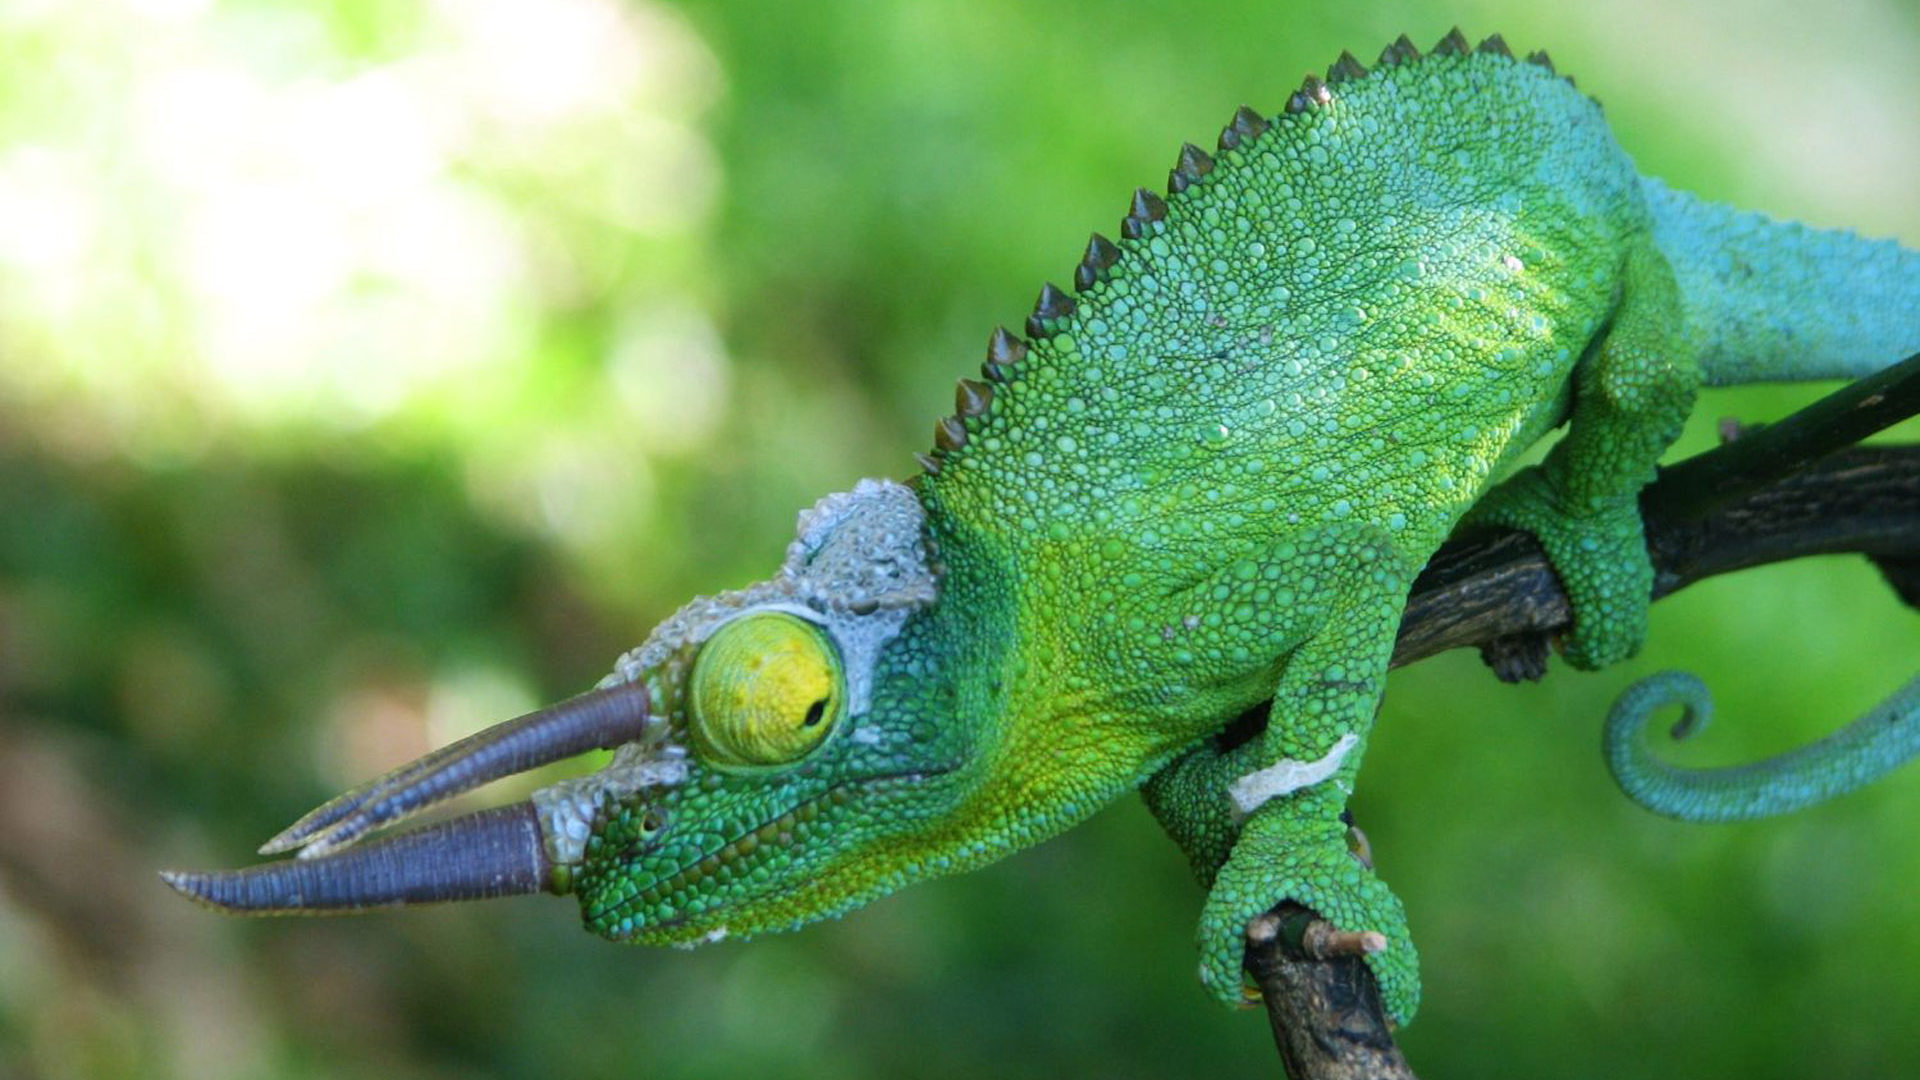 Hd Car Wallpapers For Tablet Green Chameleon From The Island Of Maui Hawaii Hd Desktop